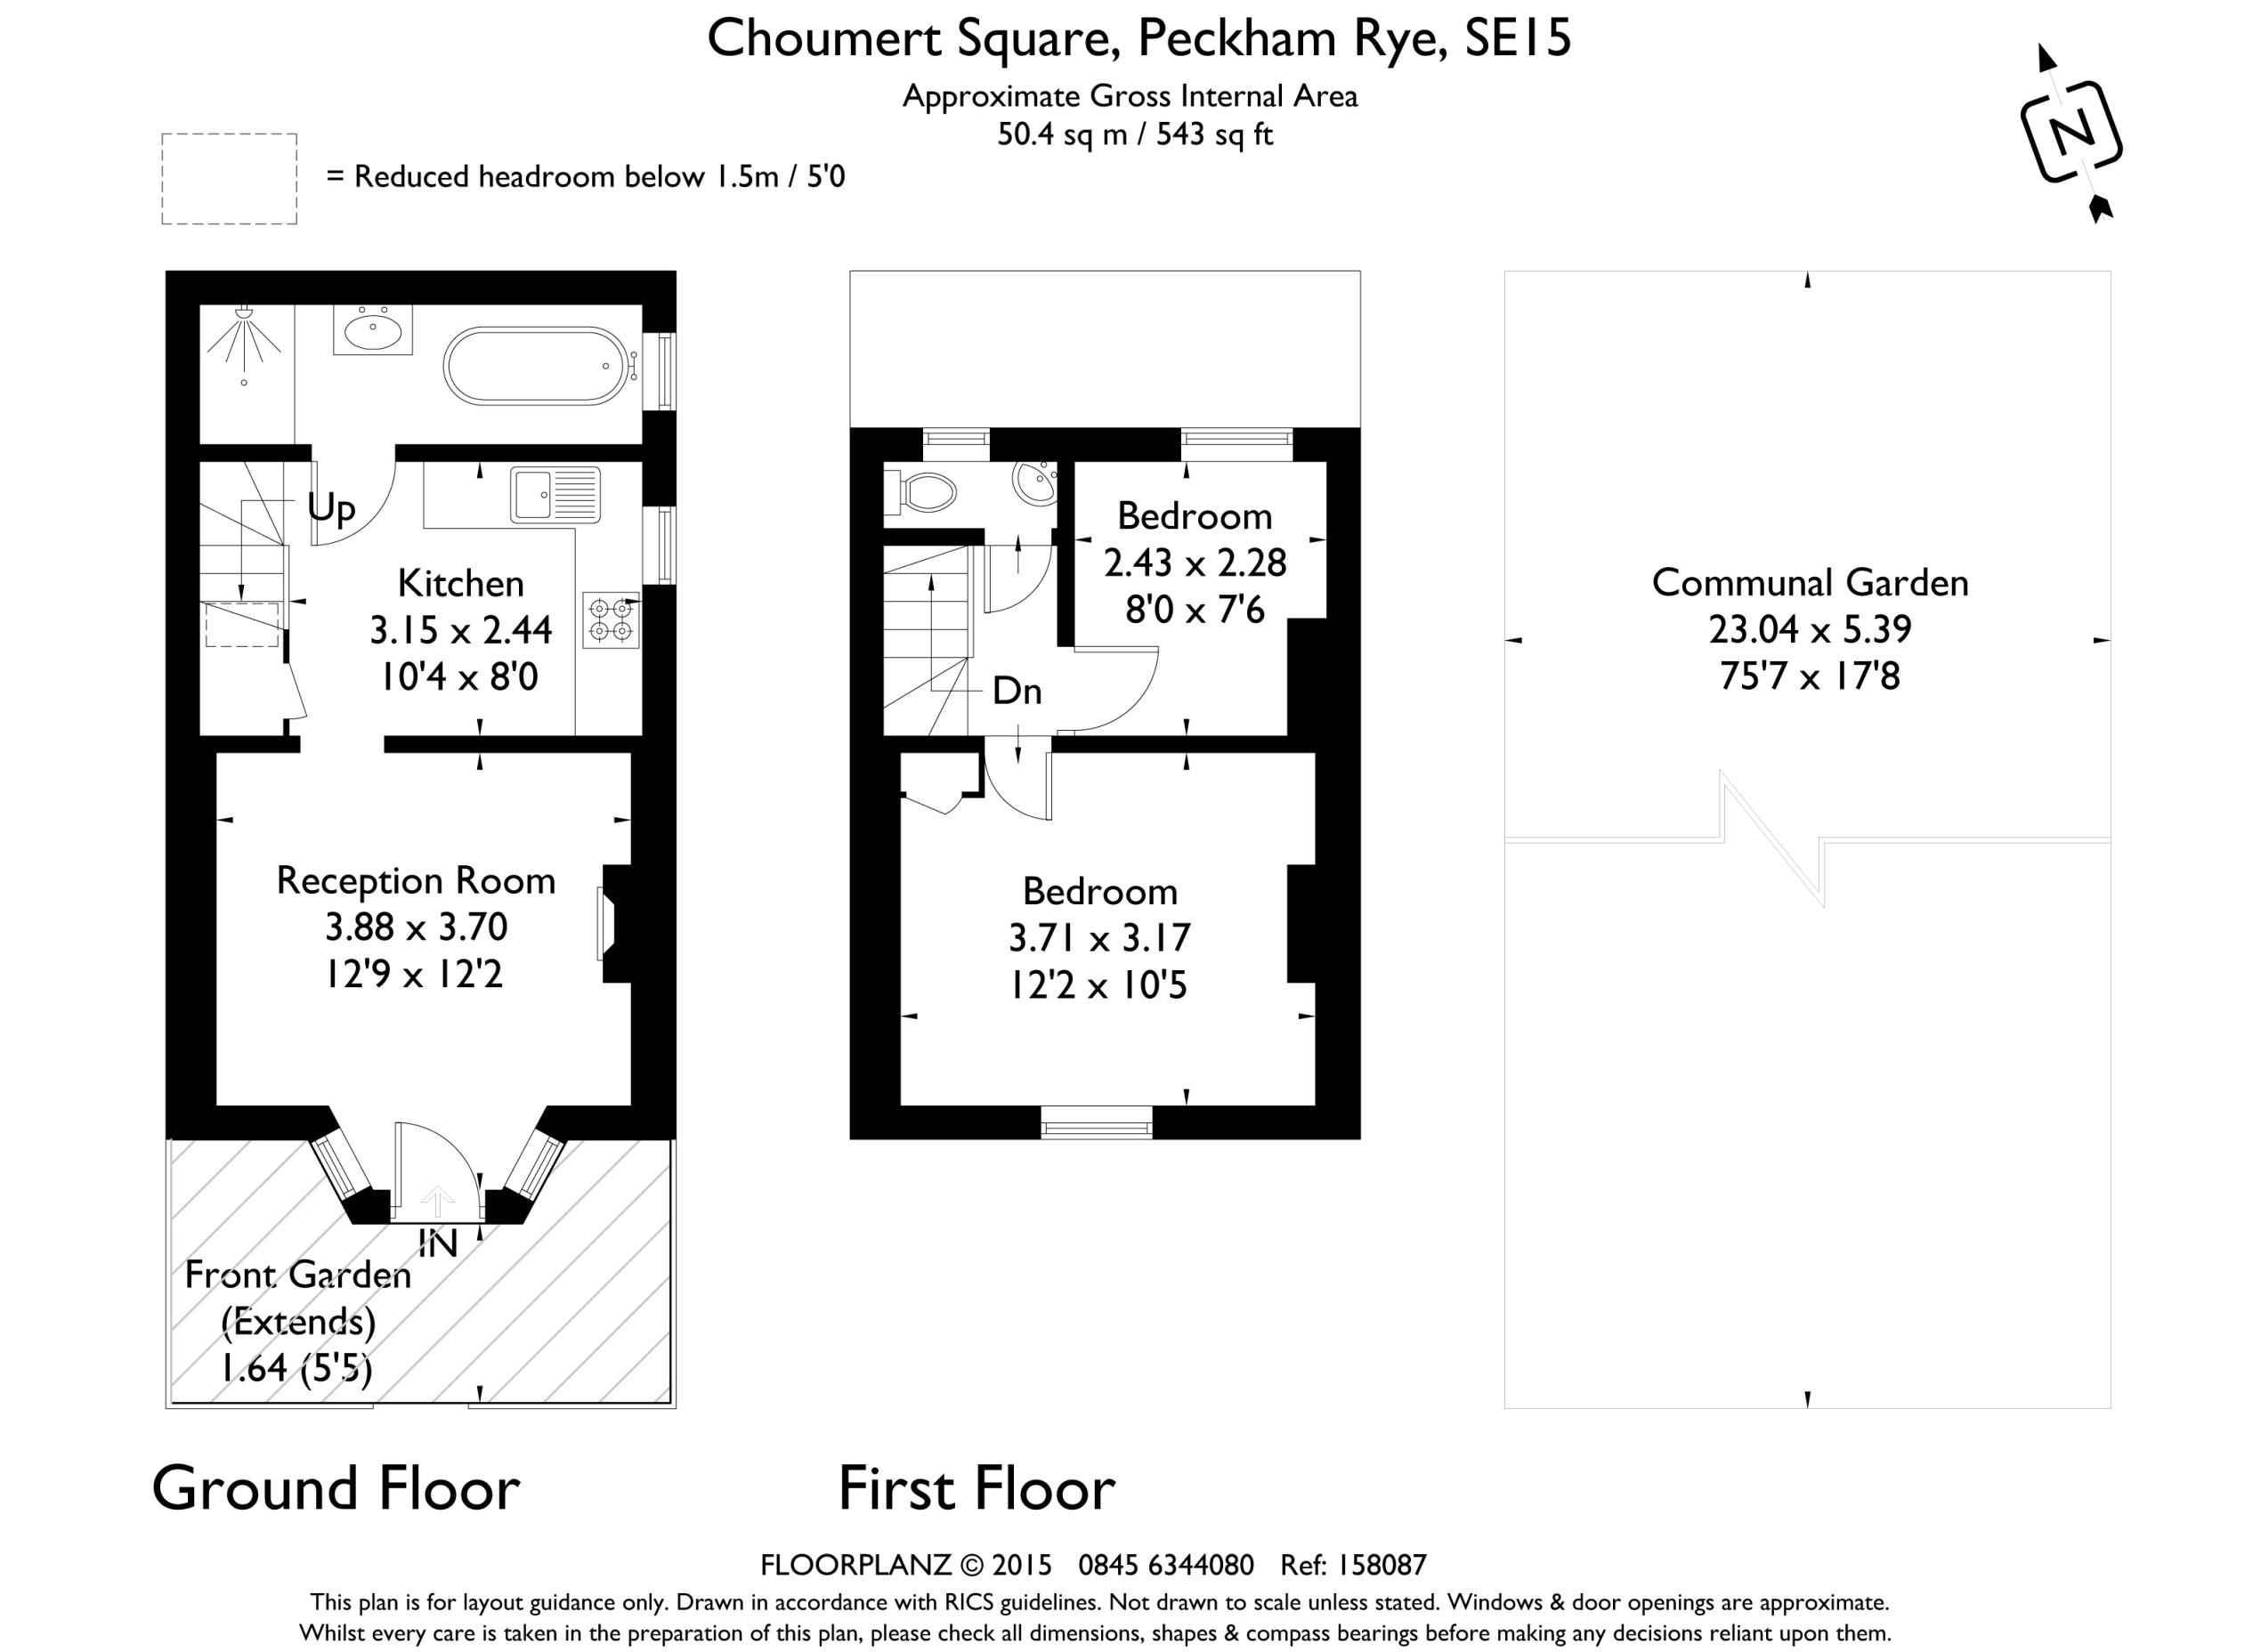 2 bedroom property for sale in choumert square  peckham